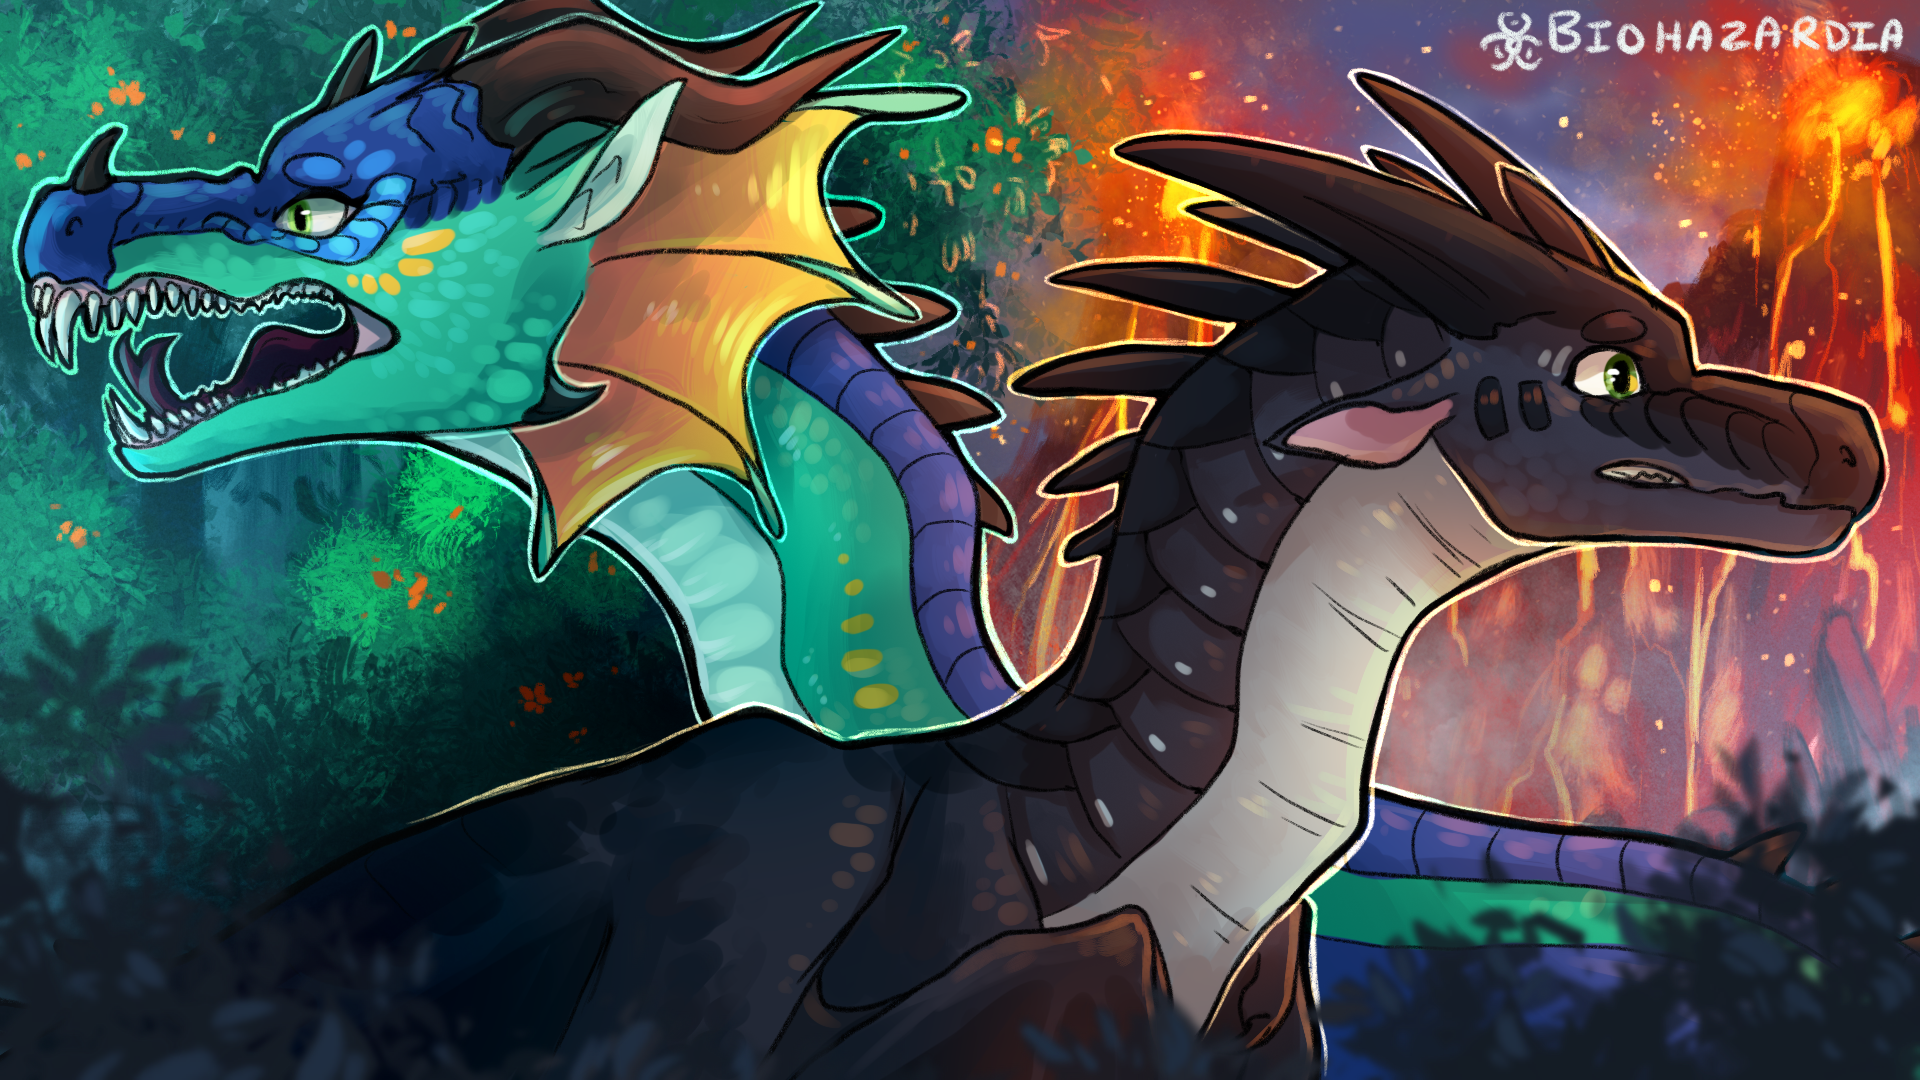 Wings Of Fire The Jungle By Biohazardia On Deviantart